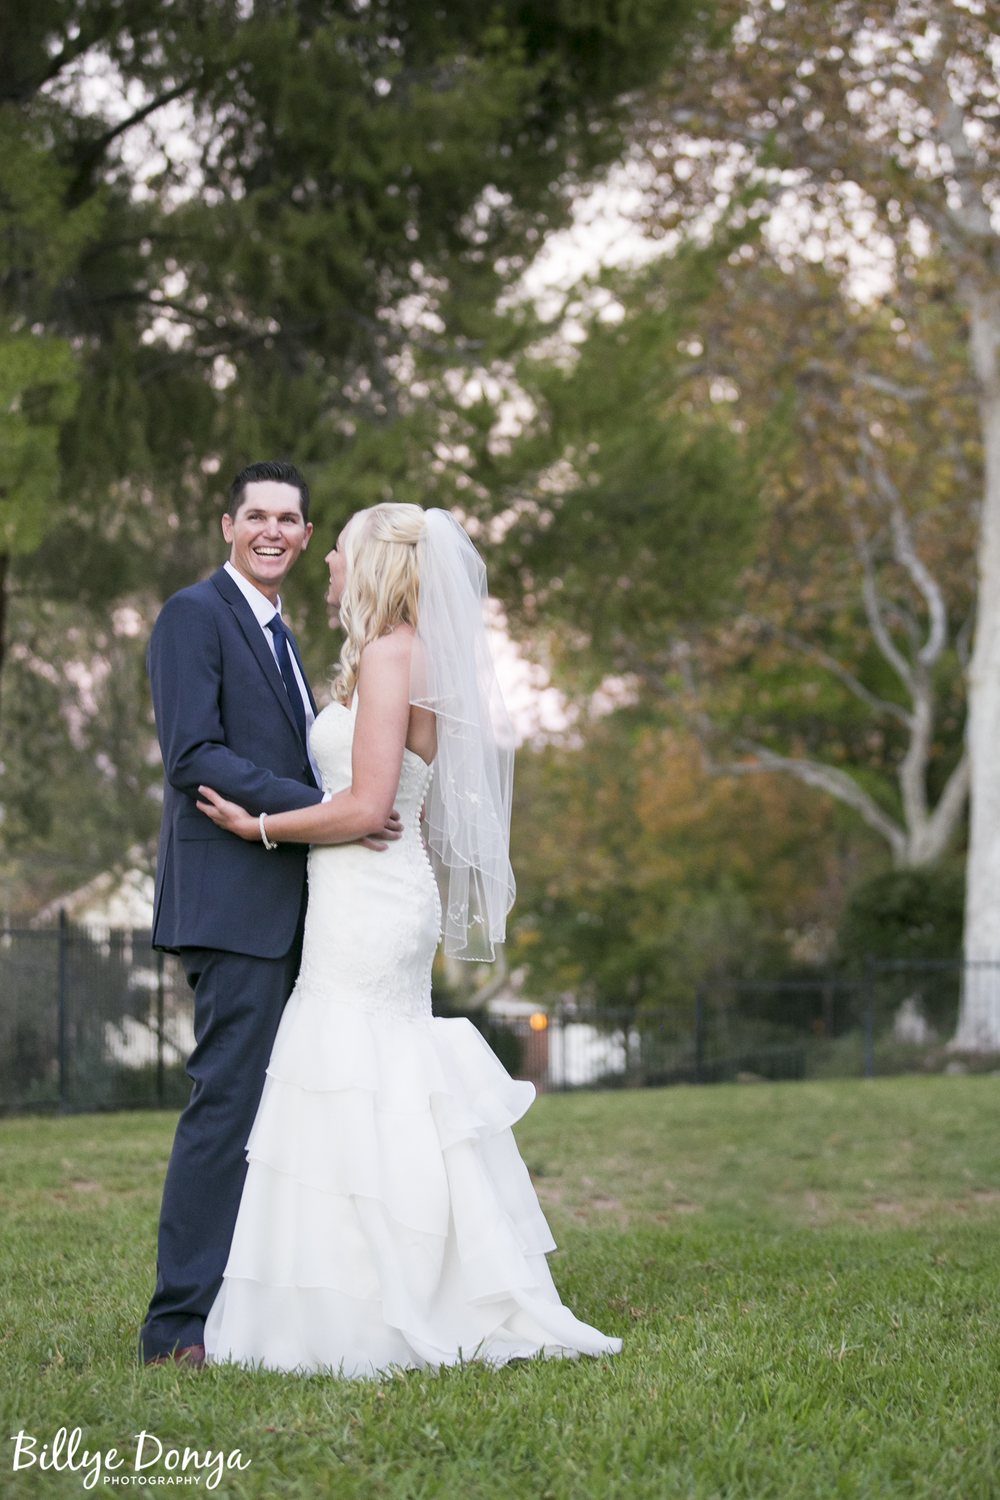 Santa Clarita Wedding Photographer-3.JPG